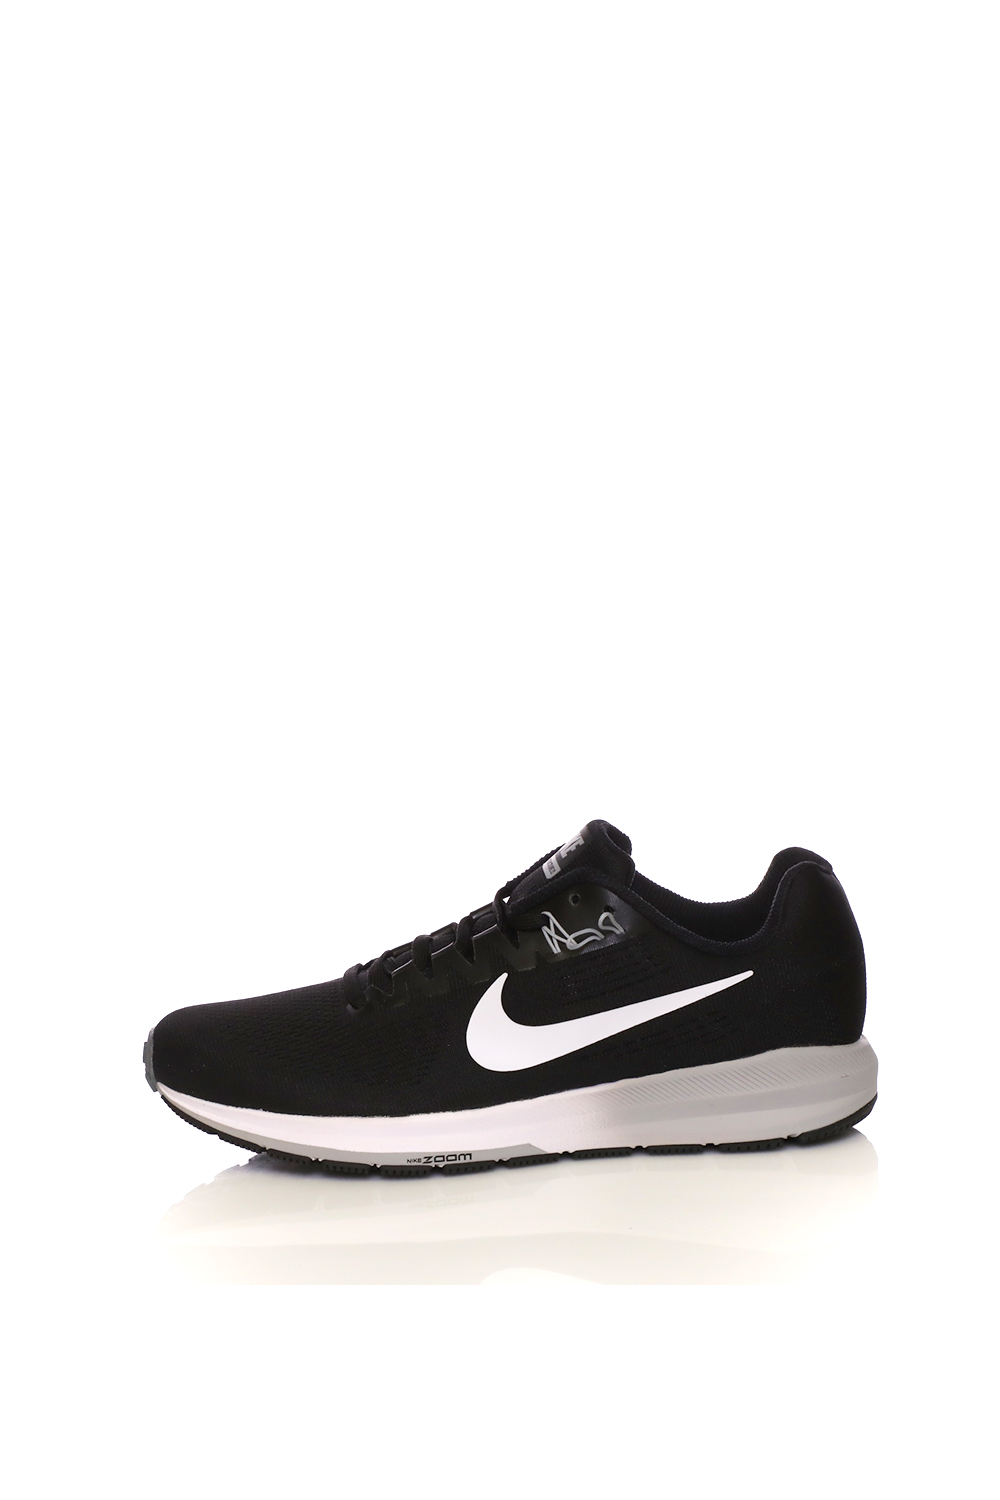 NIKE – Ανδρικά παπούτσια NIKE AIR ZOOM STRUCTURE 21 μαύρα